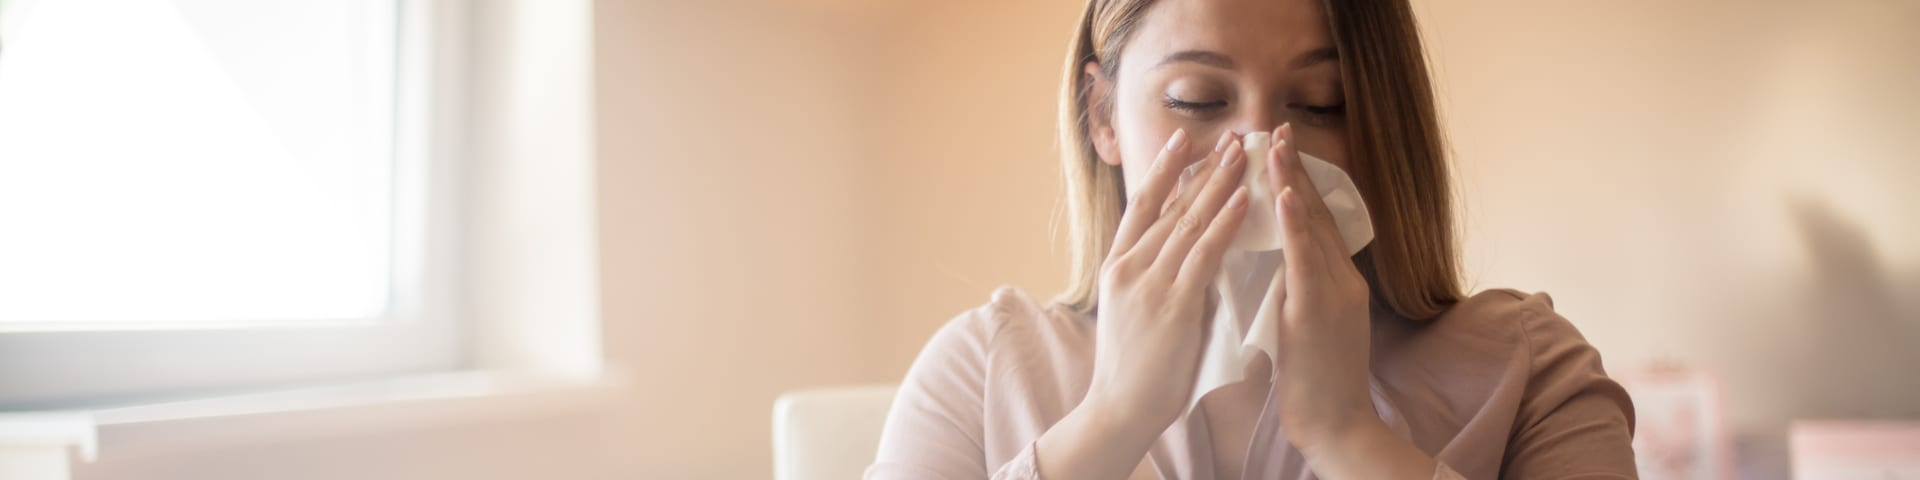 Allergies in the Office – 10 Common Allergens